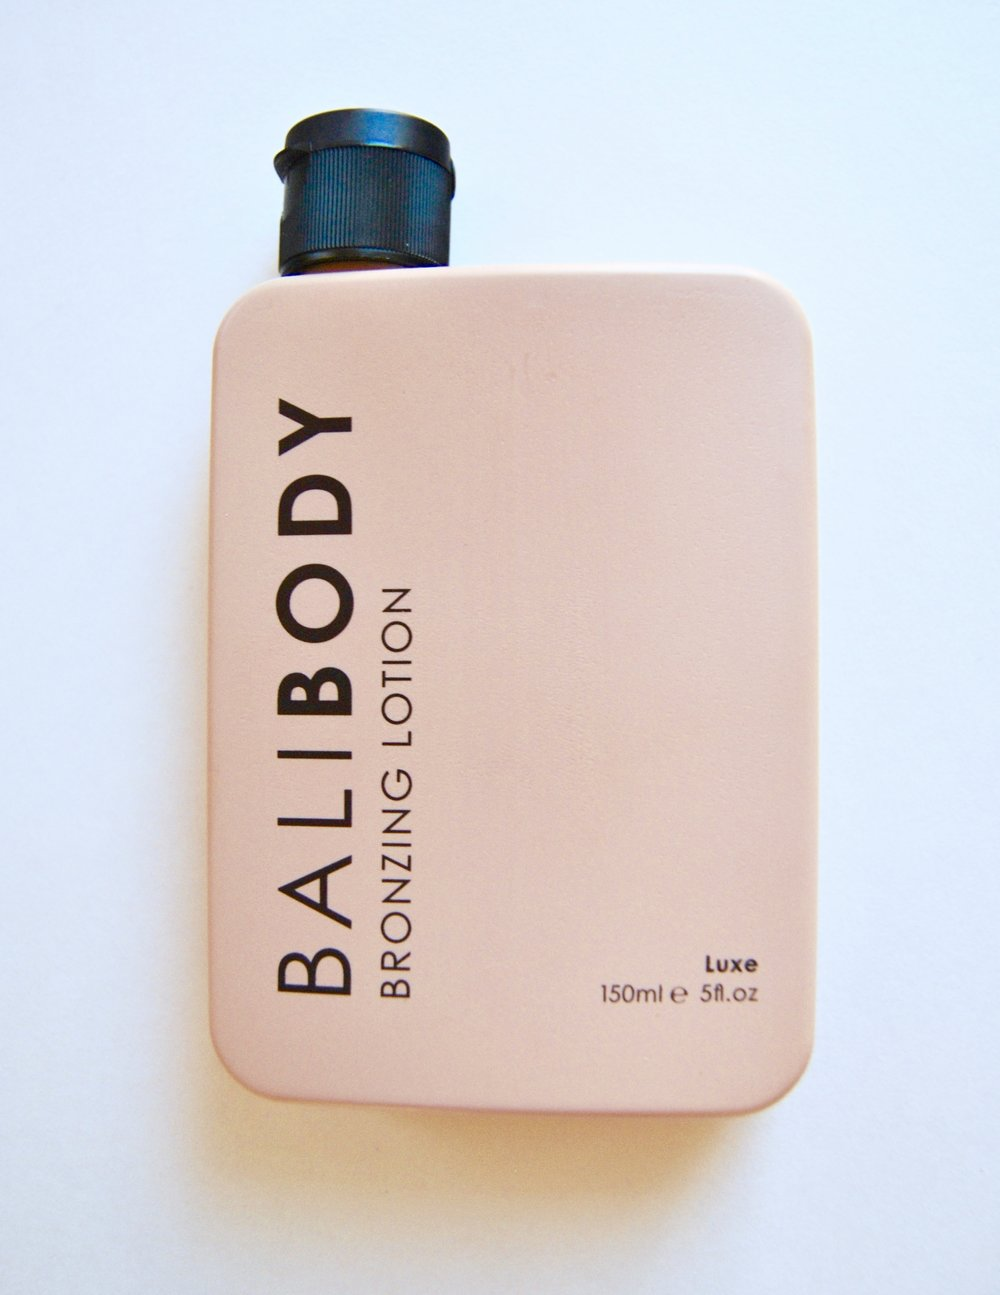 BaliBodyBronzing Lotion, 5 oz. - us.balibodyco.com : $25.95